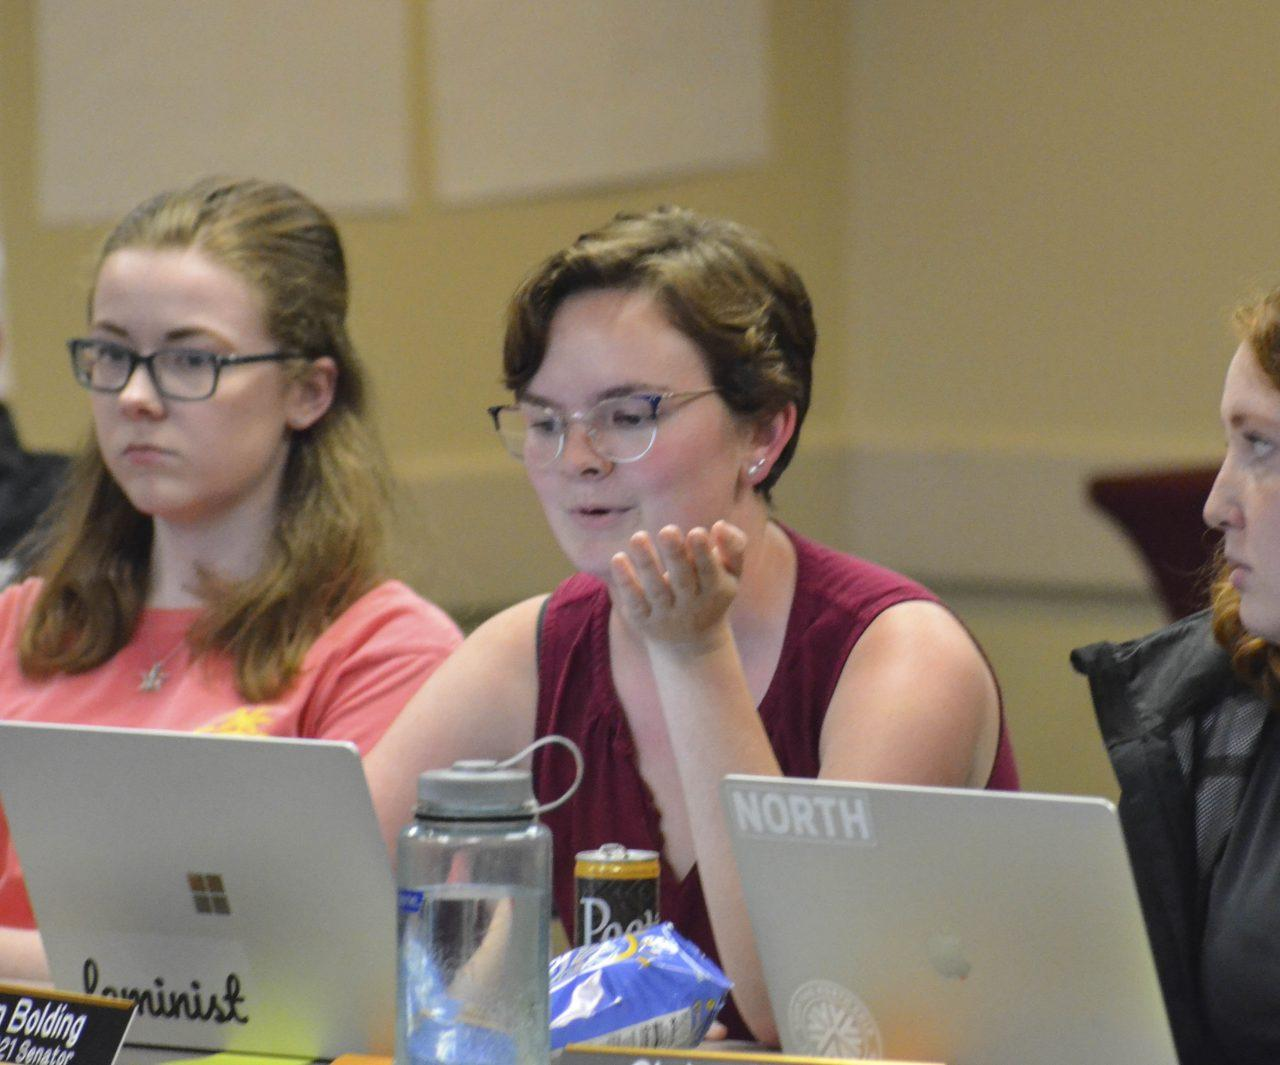 SGA passes resolution recommending that Chick-fil-A is removed from Revolve